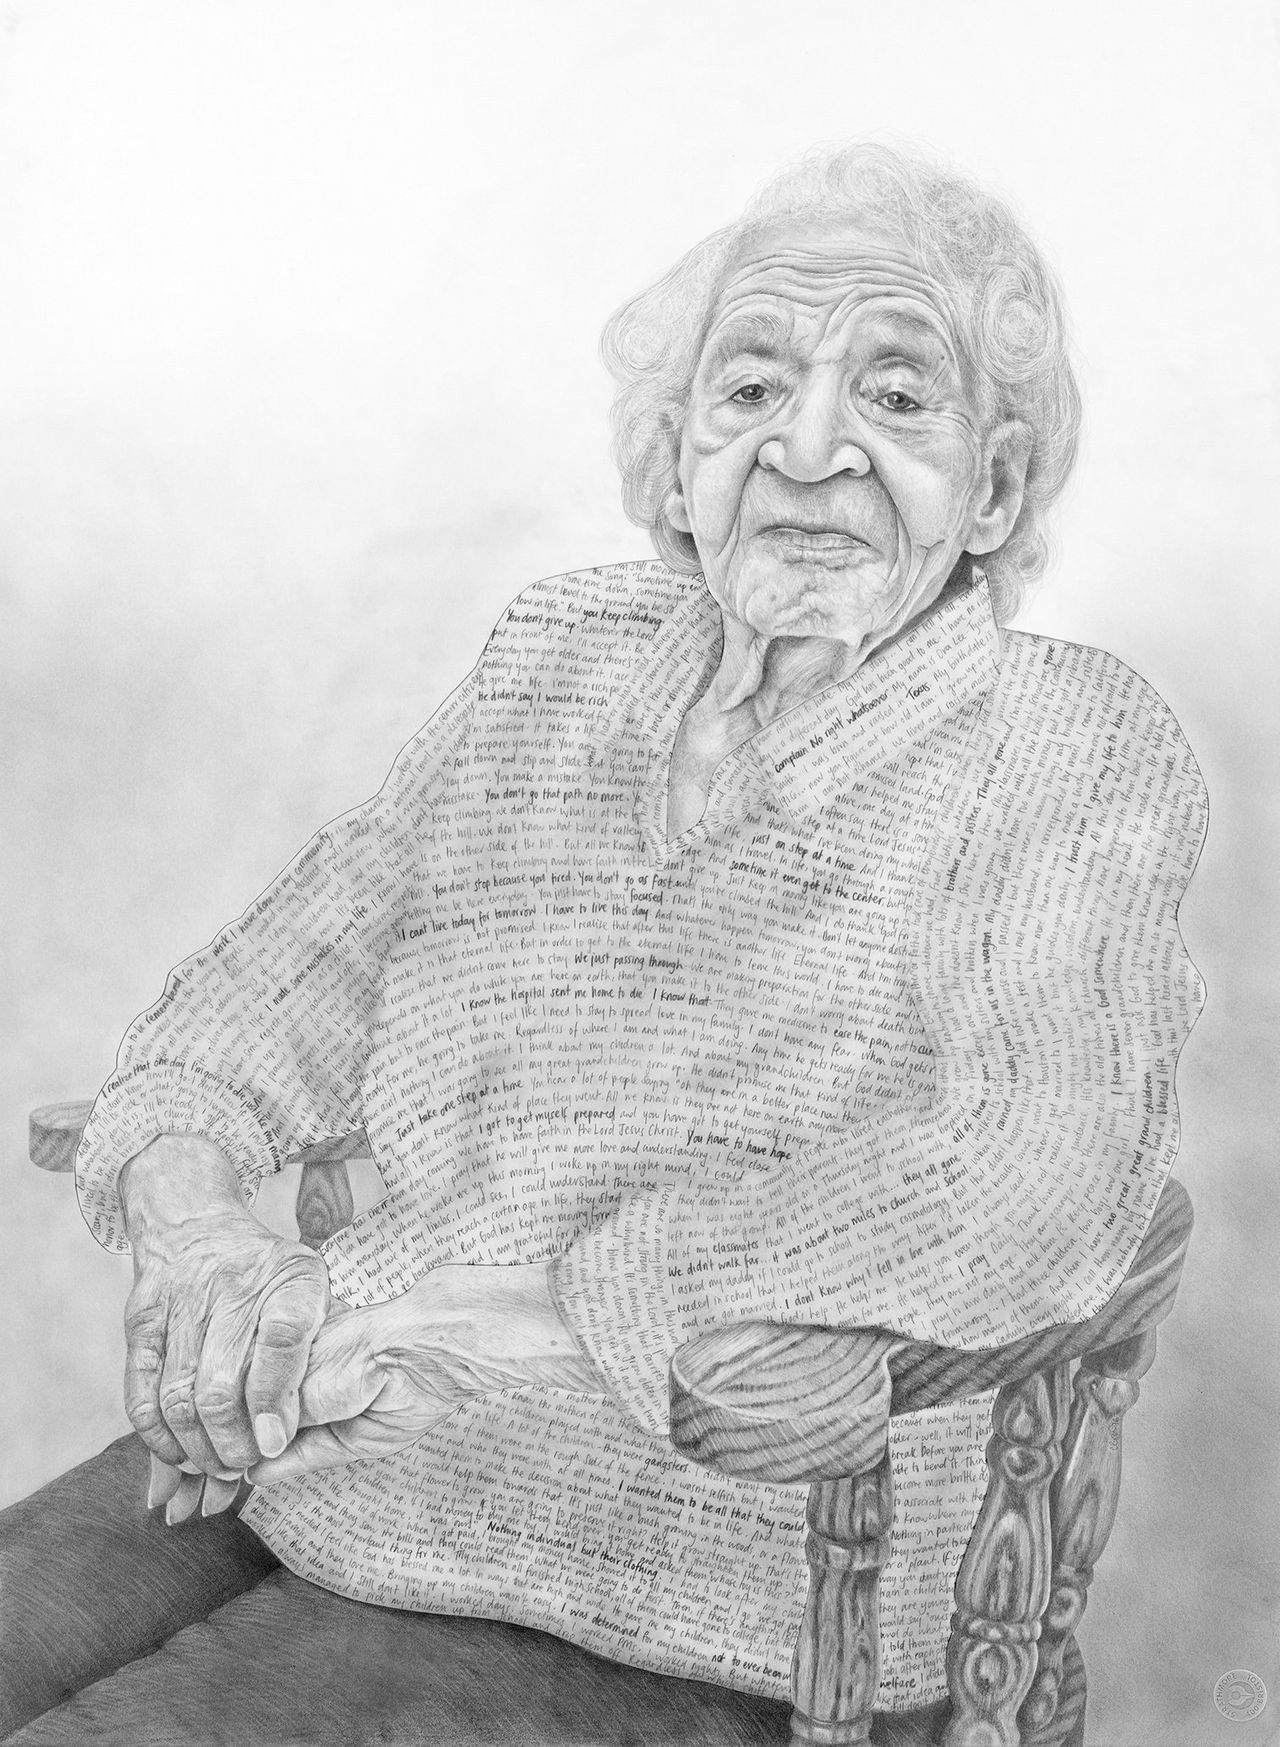 """""""I was introduced to Ora through Pathways Hospice. We met in her home in Portola where she lived with several generations of her family. At 99 years old, Ora was a great-great-grandmother of two and the last living person of her many siblings and school friends. Ora was a staunch believer in resilience and hard work and was proud that each of the generations of her family had more opportunities than the last. At the age of 8, Ora decided to be baptized into Christianity and went on to be an active member of her Church community throughout her life. She attributed her ability to move through life's challenges to her unwavering faith in God and told me that she had spent her whole life in preparation for the day that God would decide to take her from this earth. Ora died on January 8, 2016."""""""